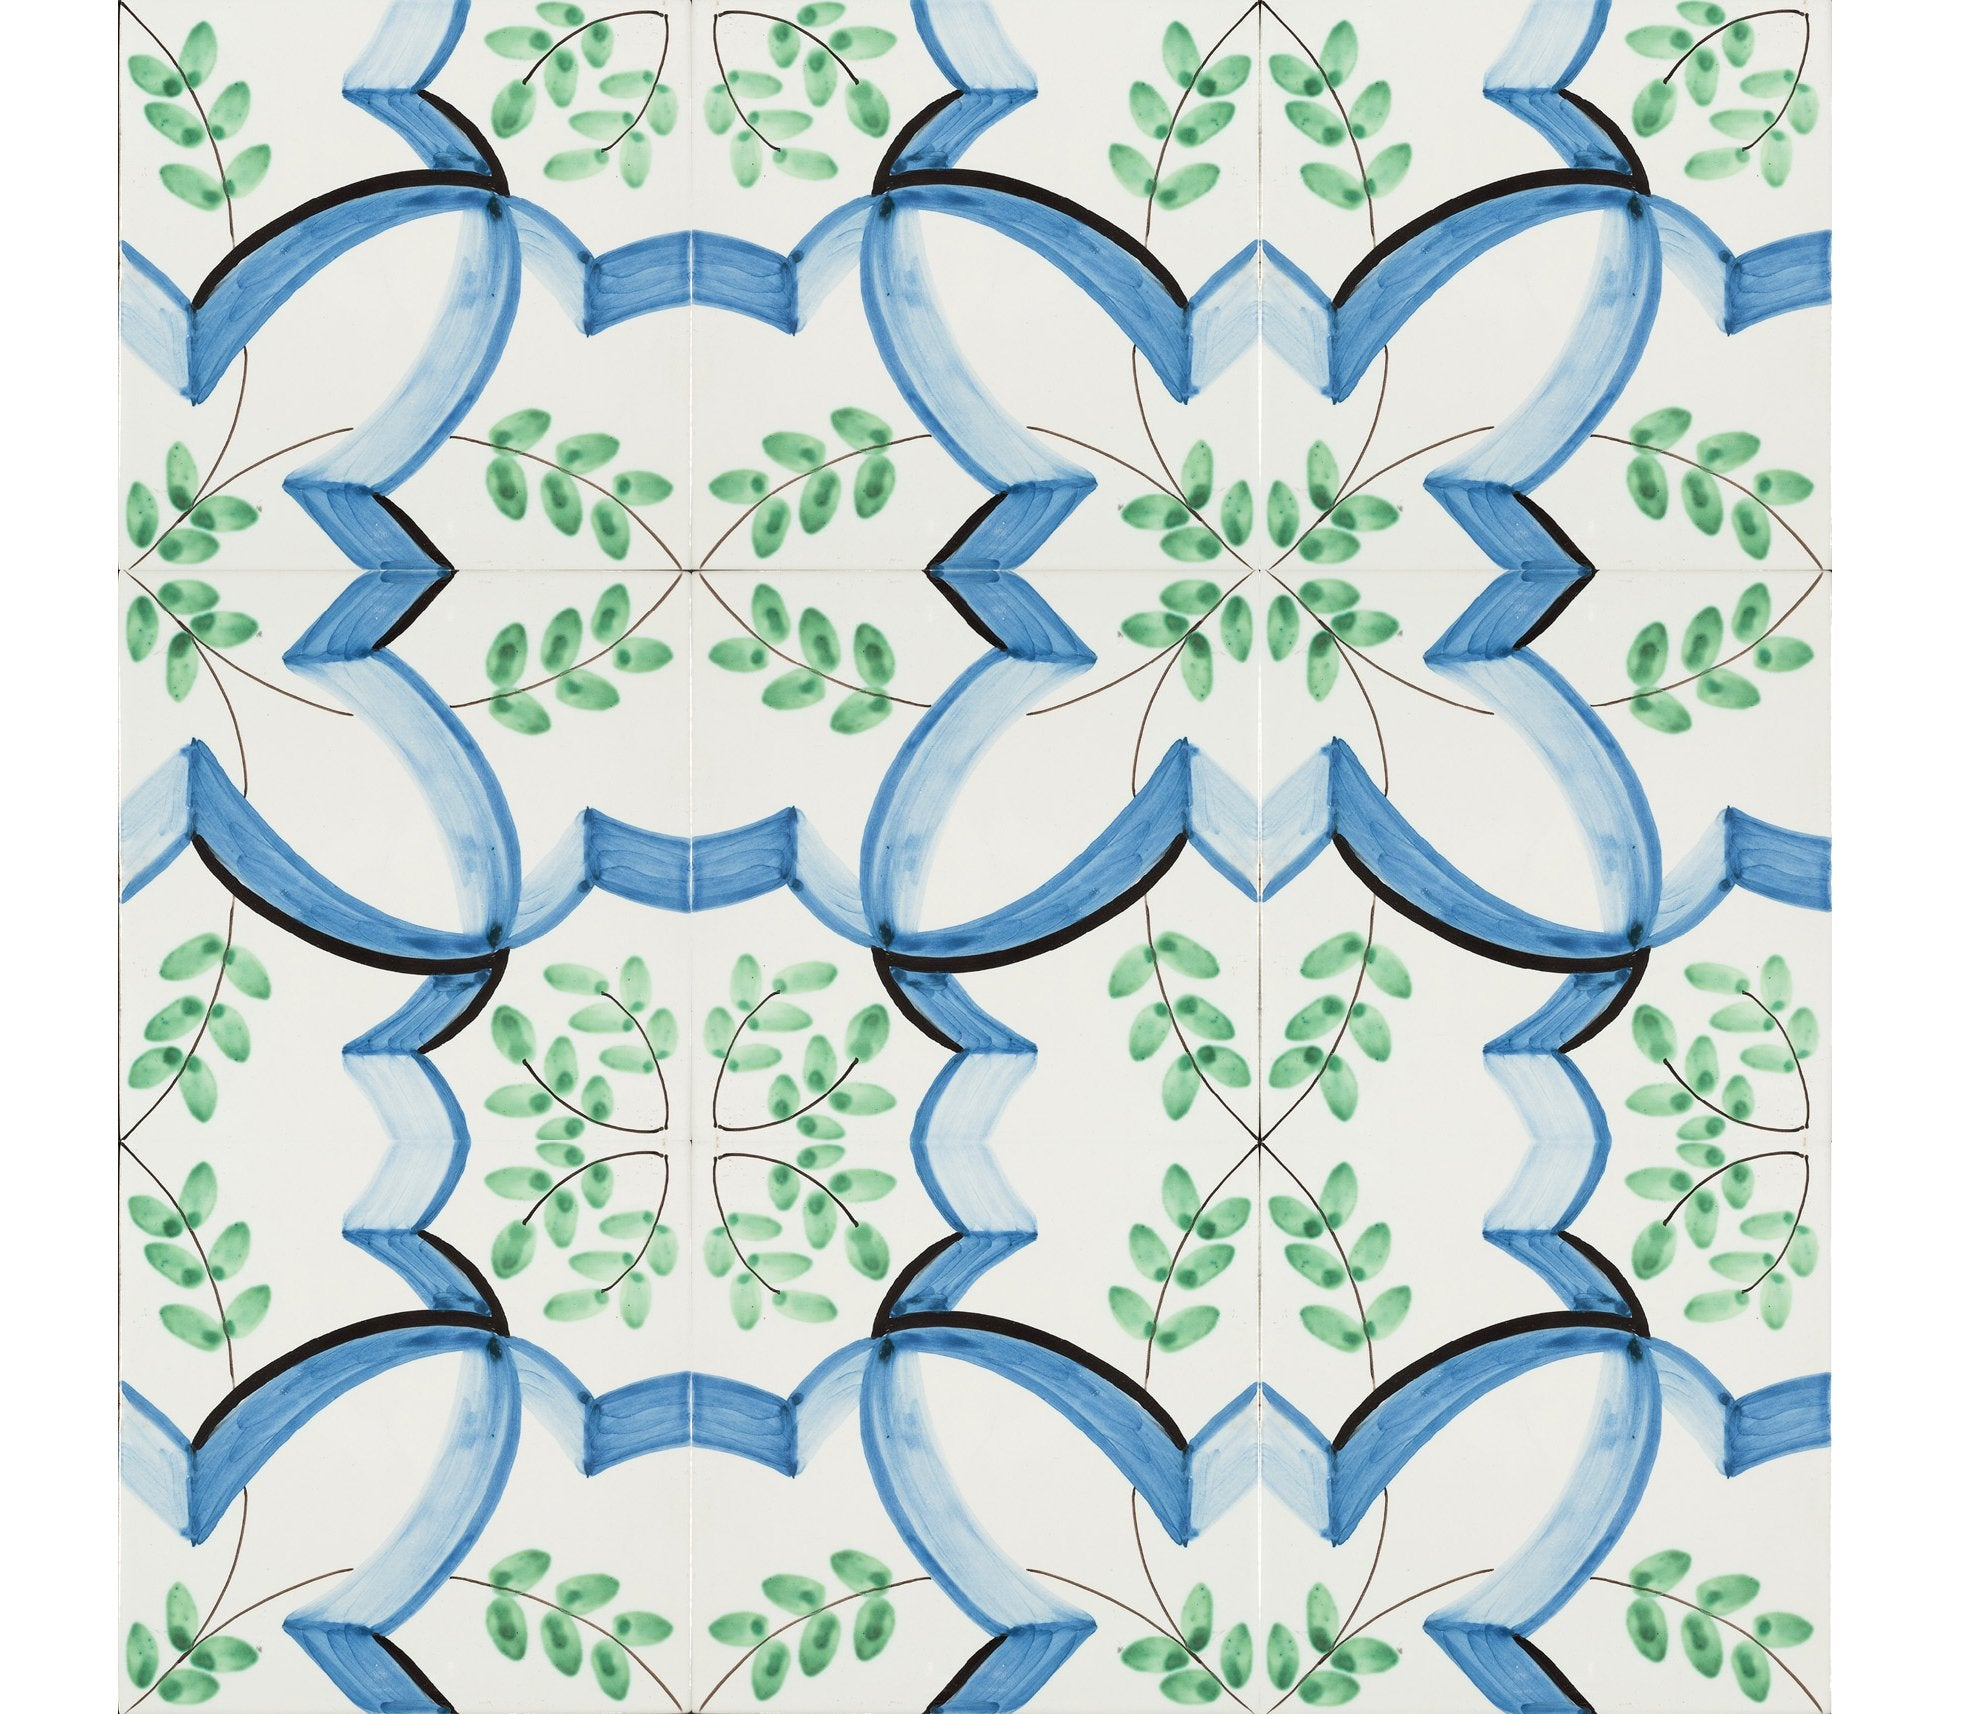 Series S Handpainted Tiles Product Image 31